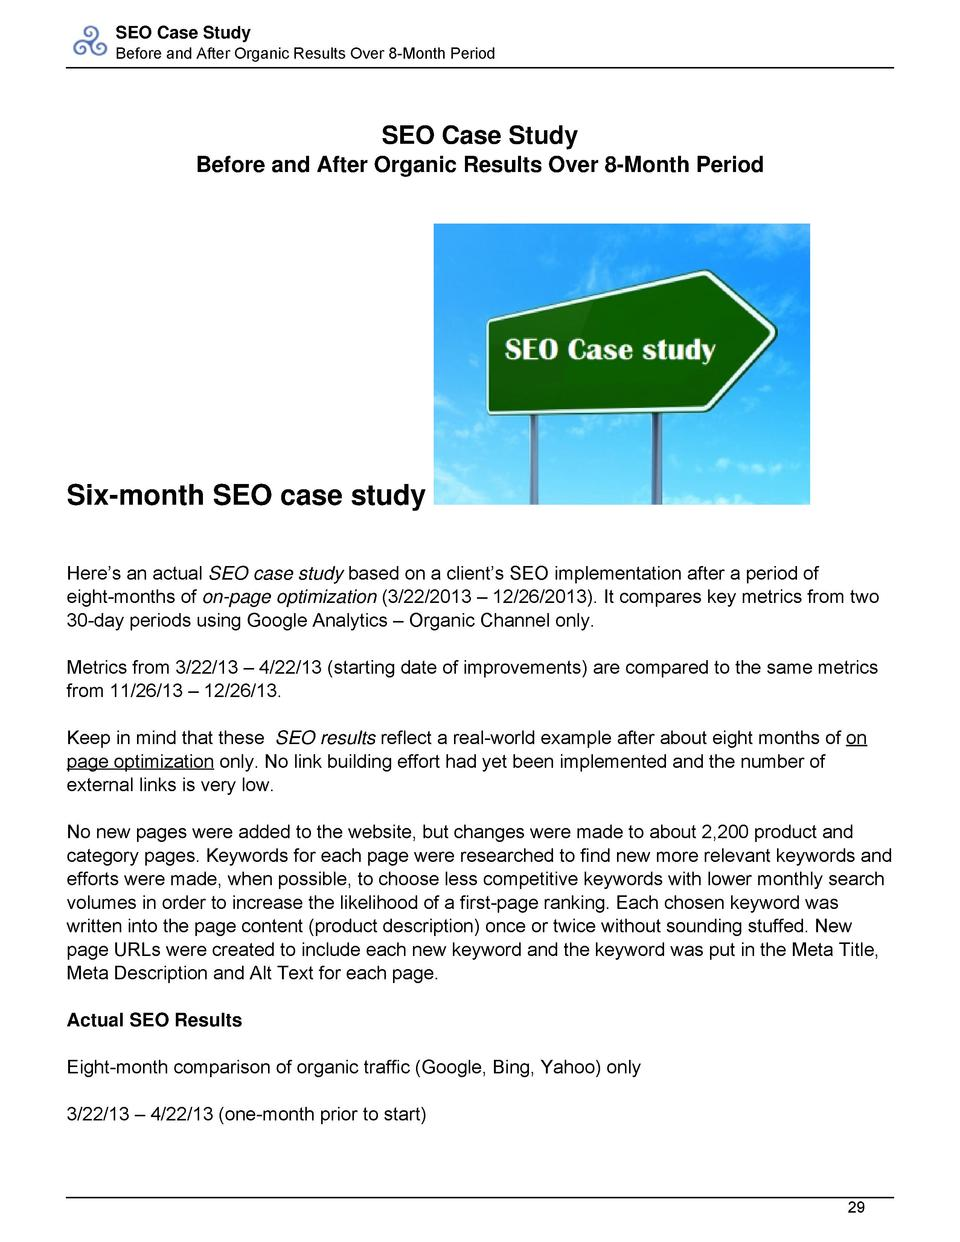 SEO Case Study Before and After Organic Results Over 8-Month Period  SEO Case Study Before and After Organic Results Over ...